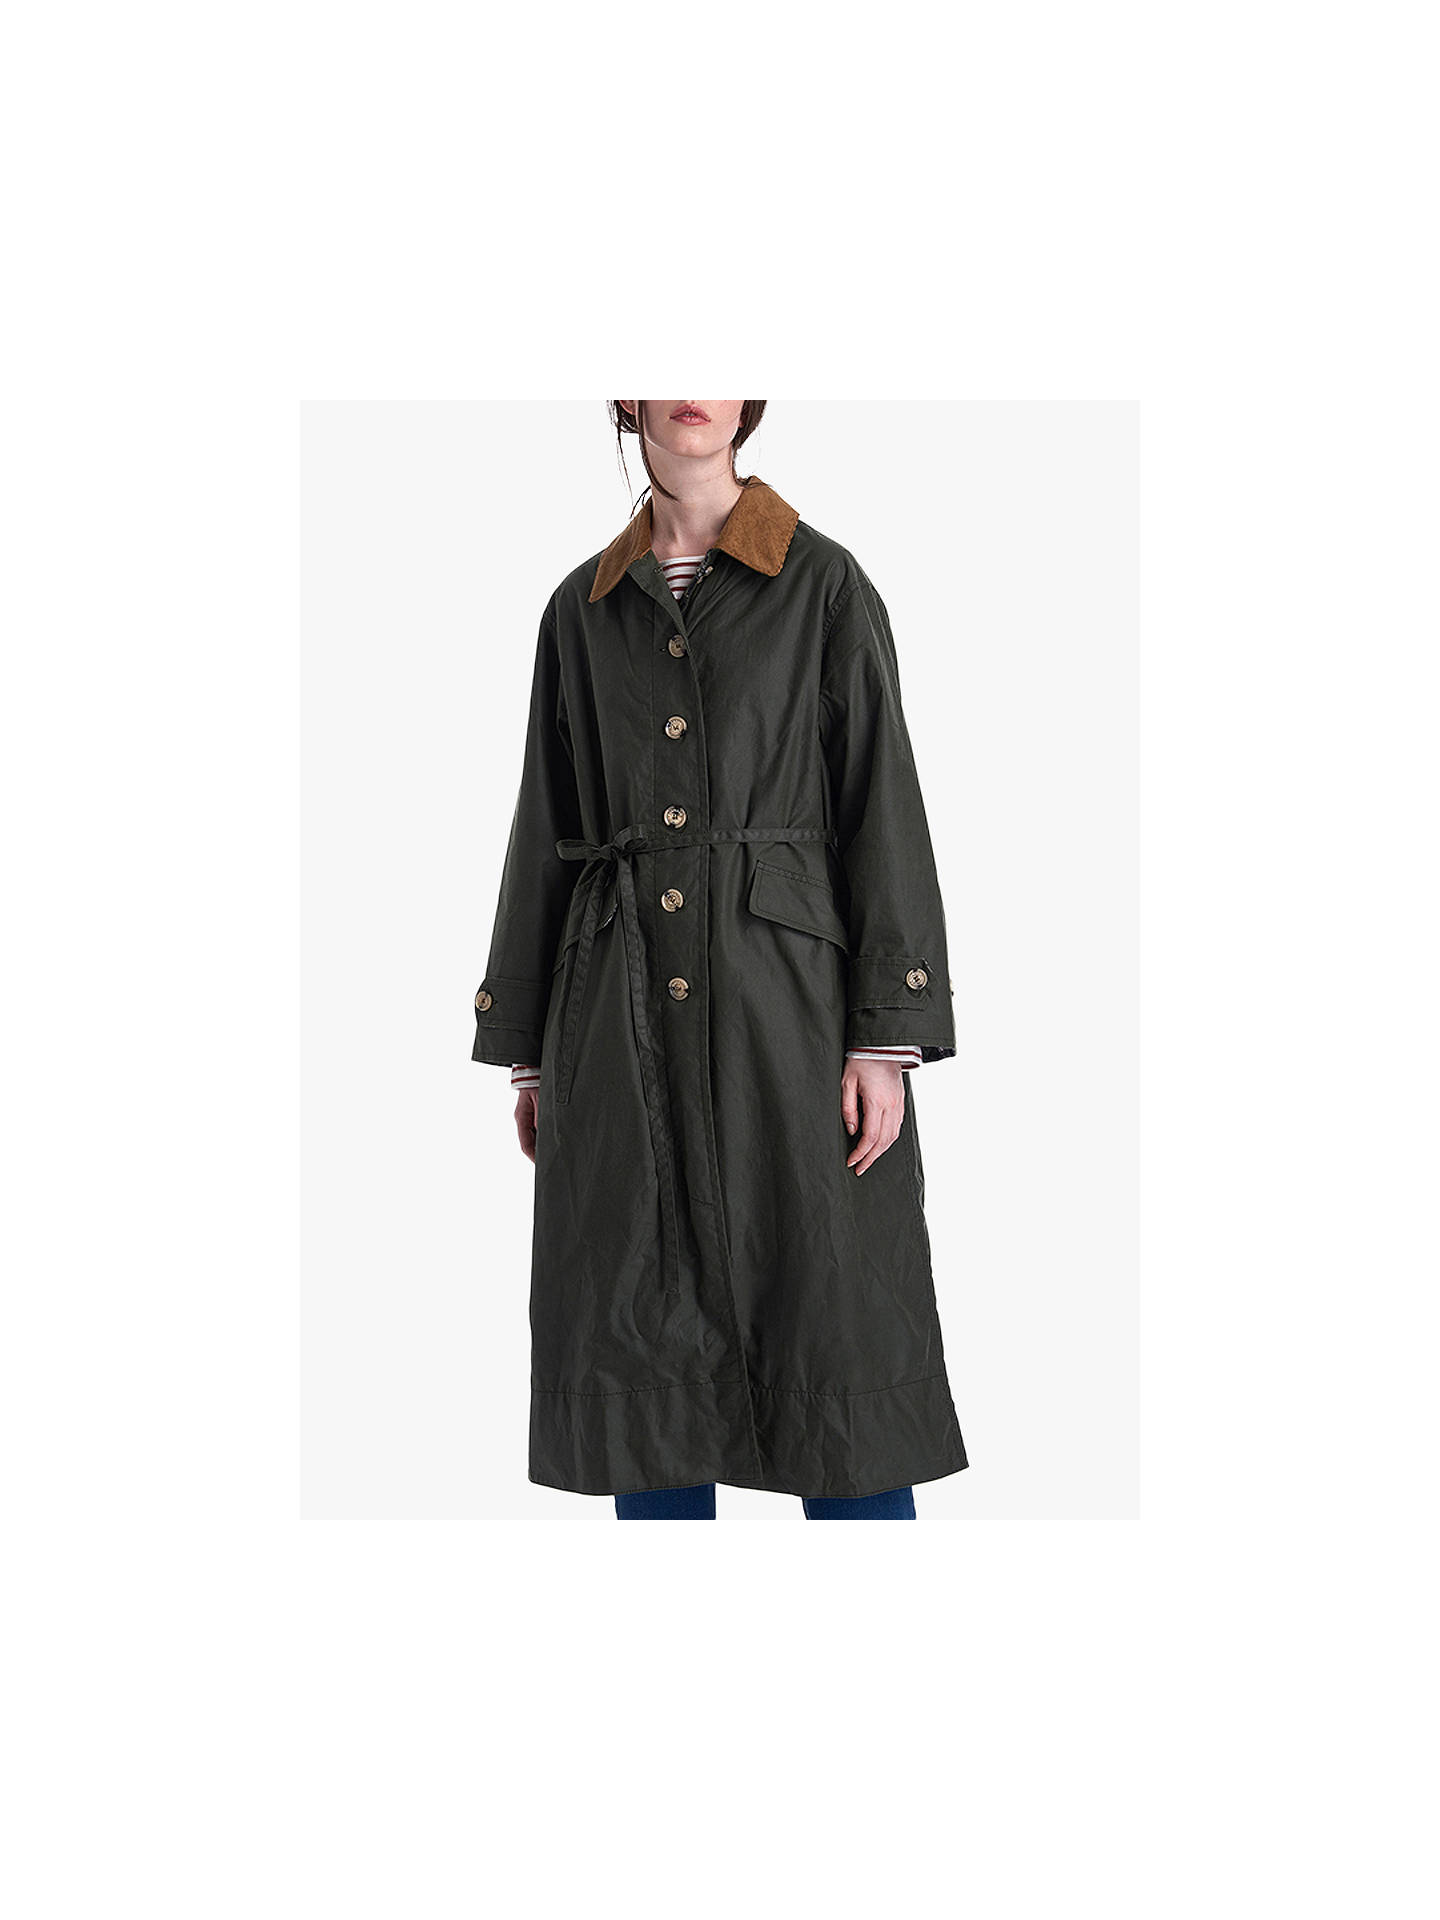 Barbour By Alexachung Maisie Waxed Jacket, Duffle Bag by Barbour